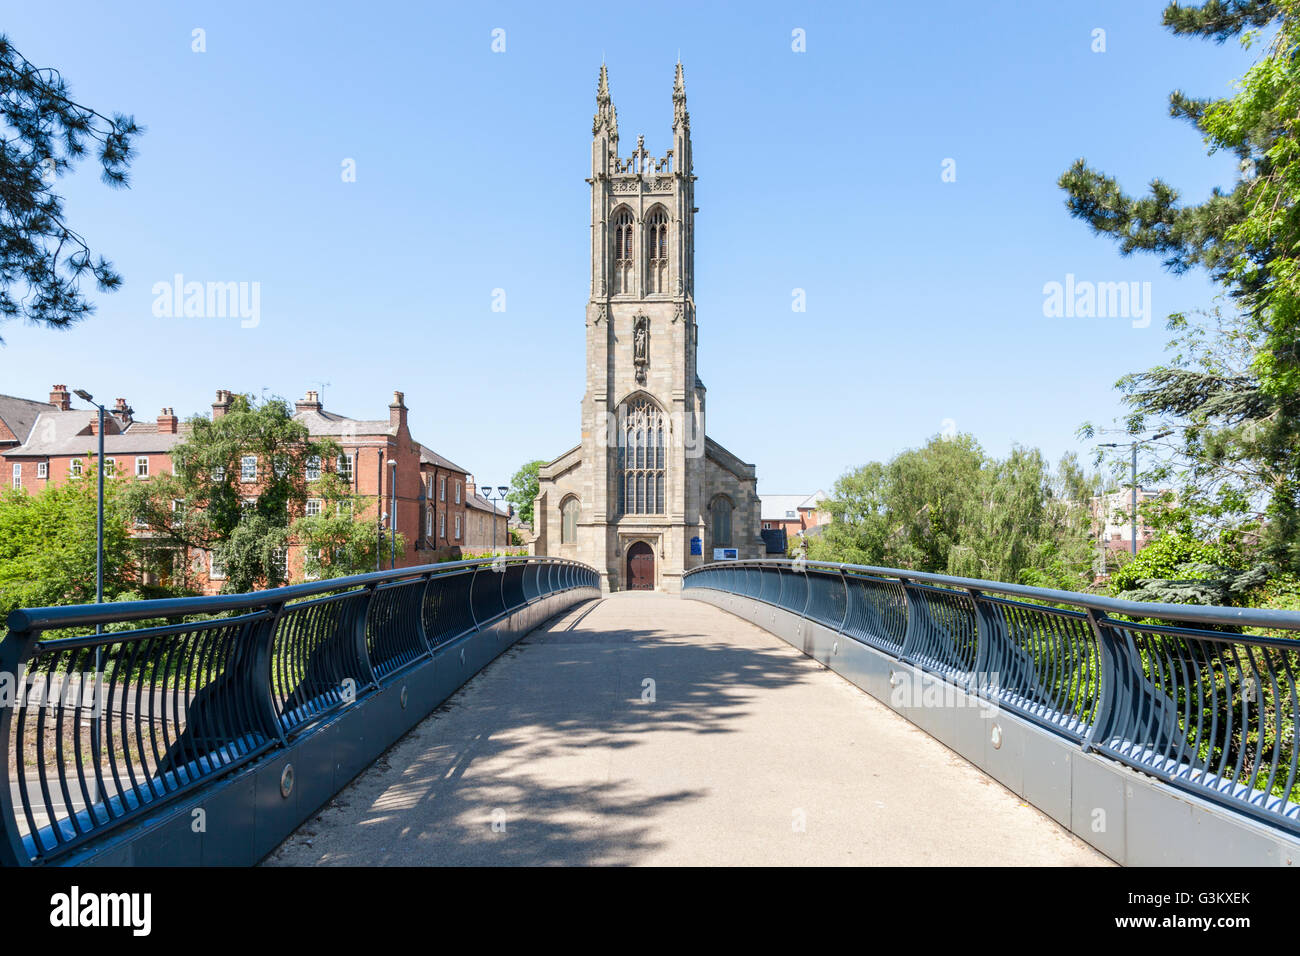 St Mary's Catholic Church, approached by a footbridge over the A601, Derby, England, UK - Stock Image